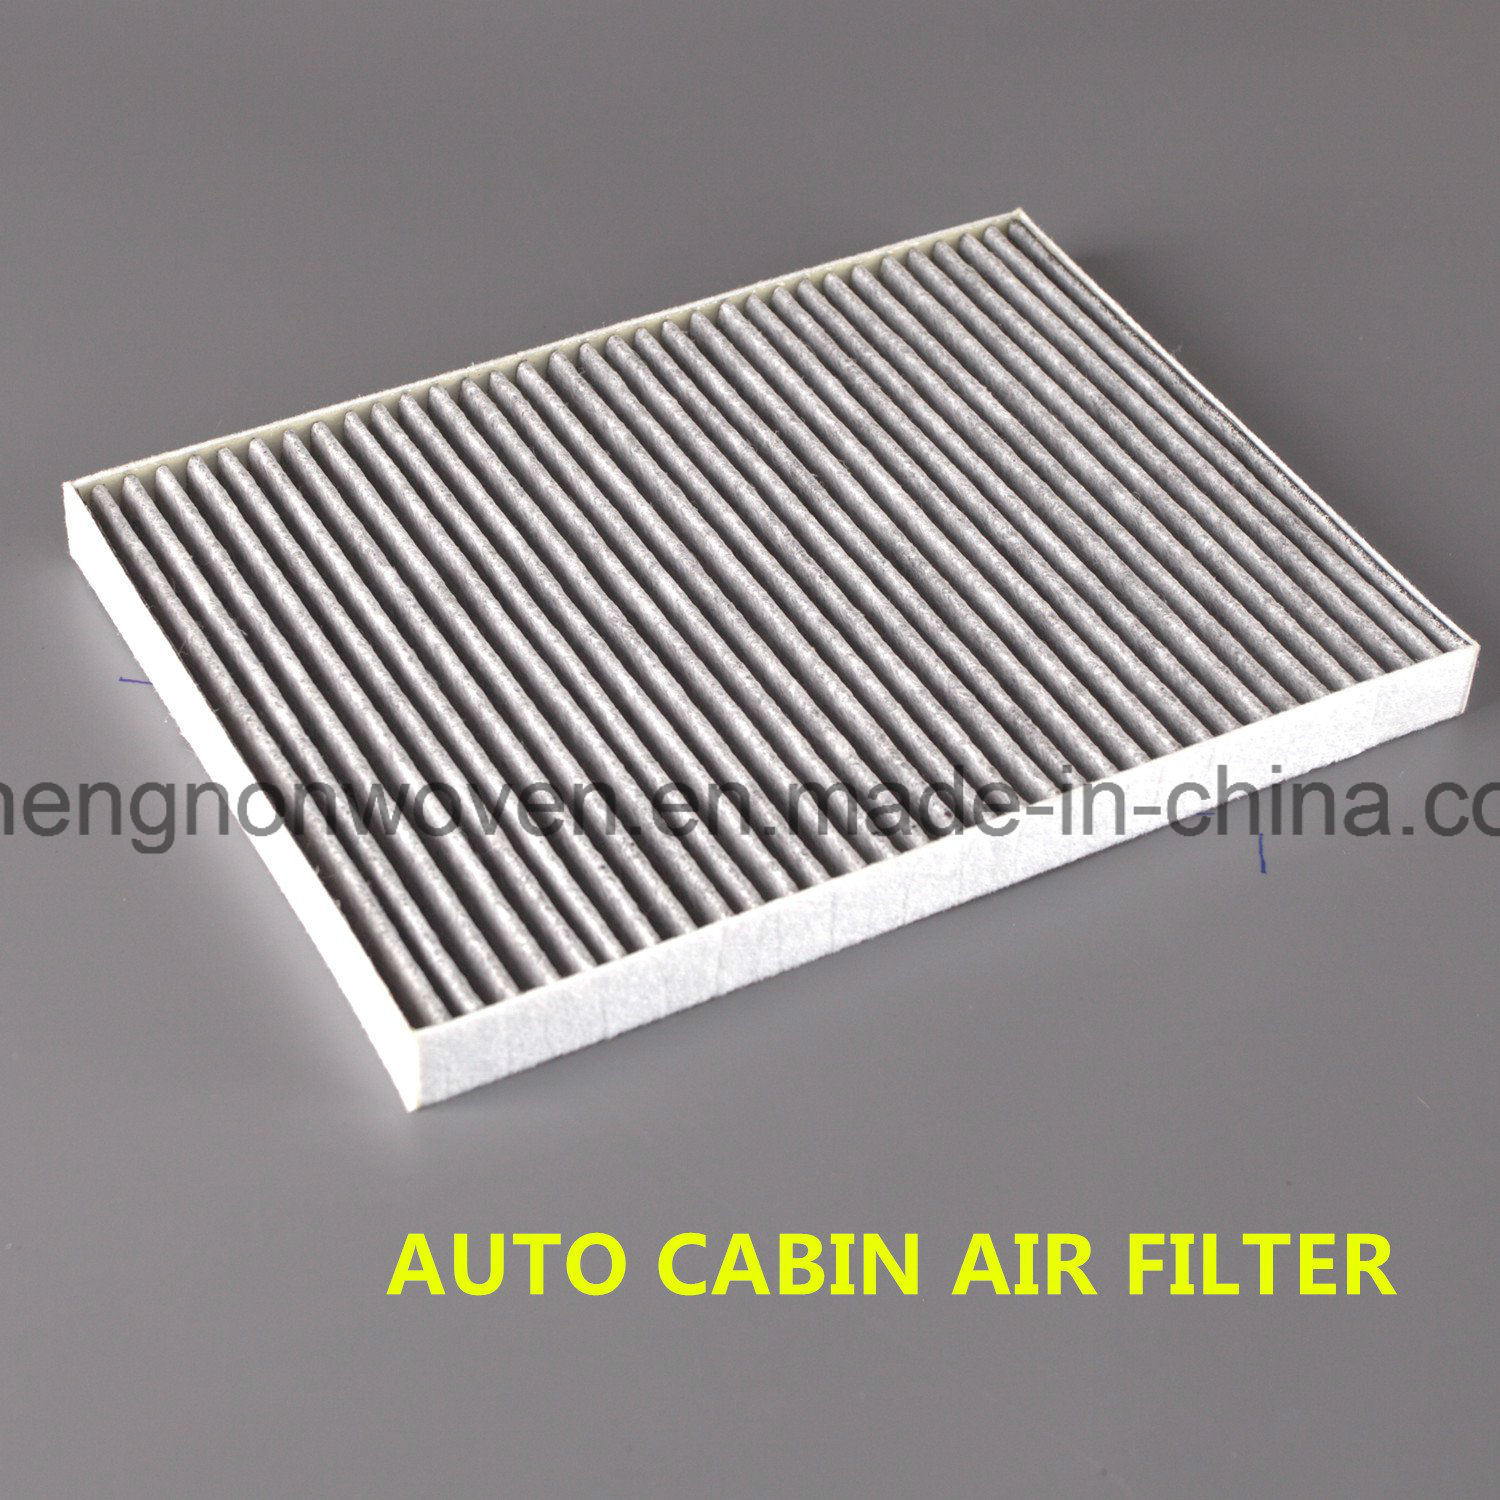 95% Filtration Efficiency Melt-Blown Composite Filter Media